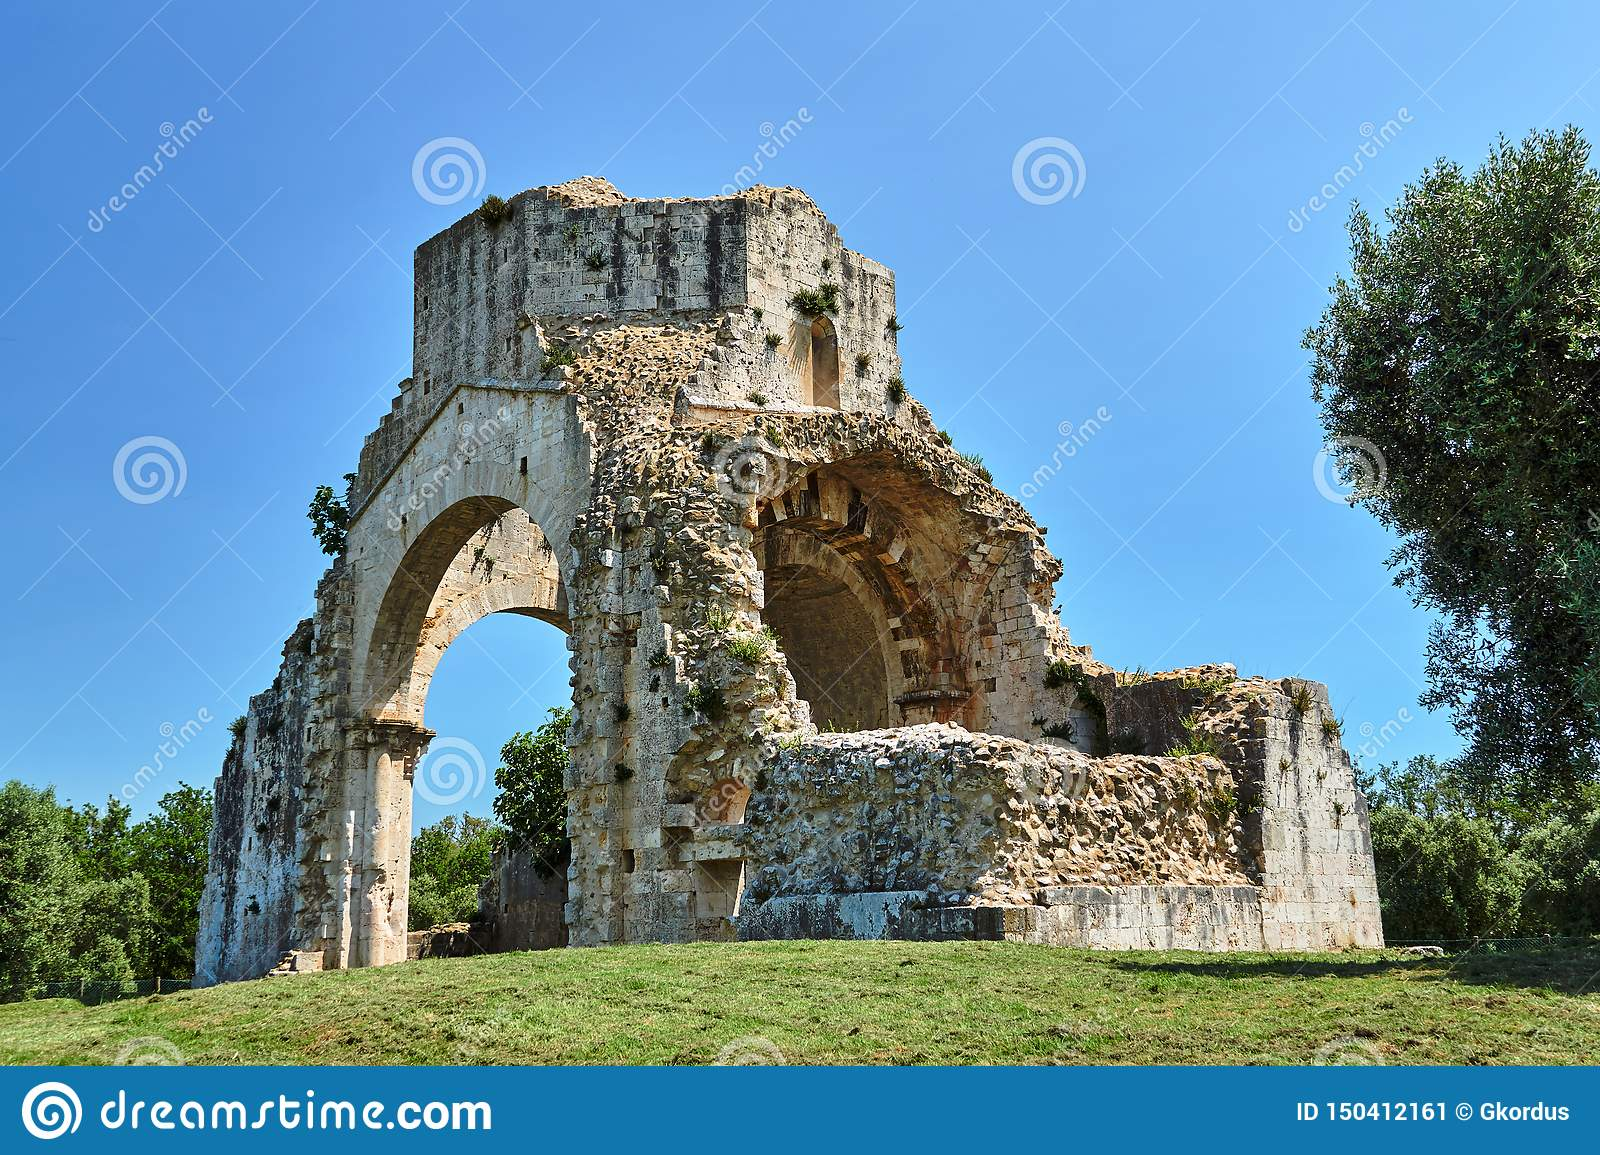 Ruins of a medieval stone church next to the town of Magliano